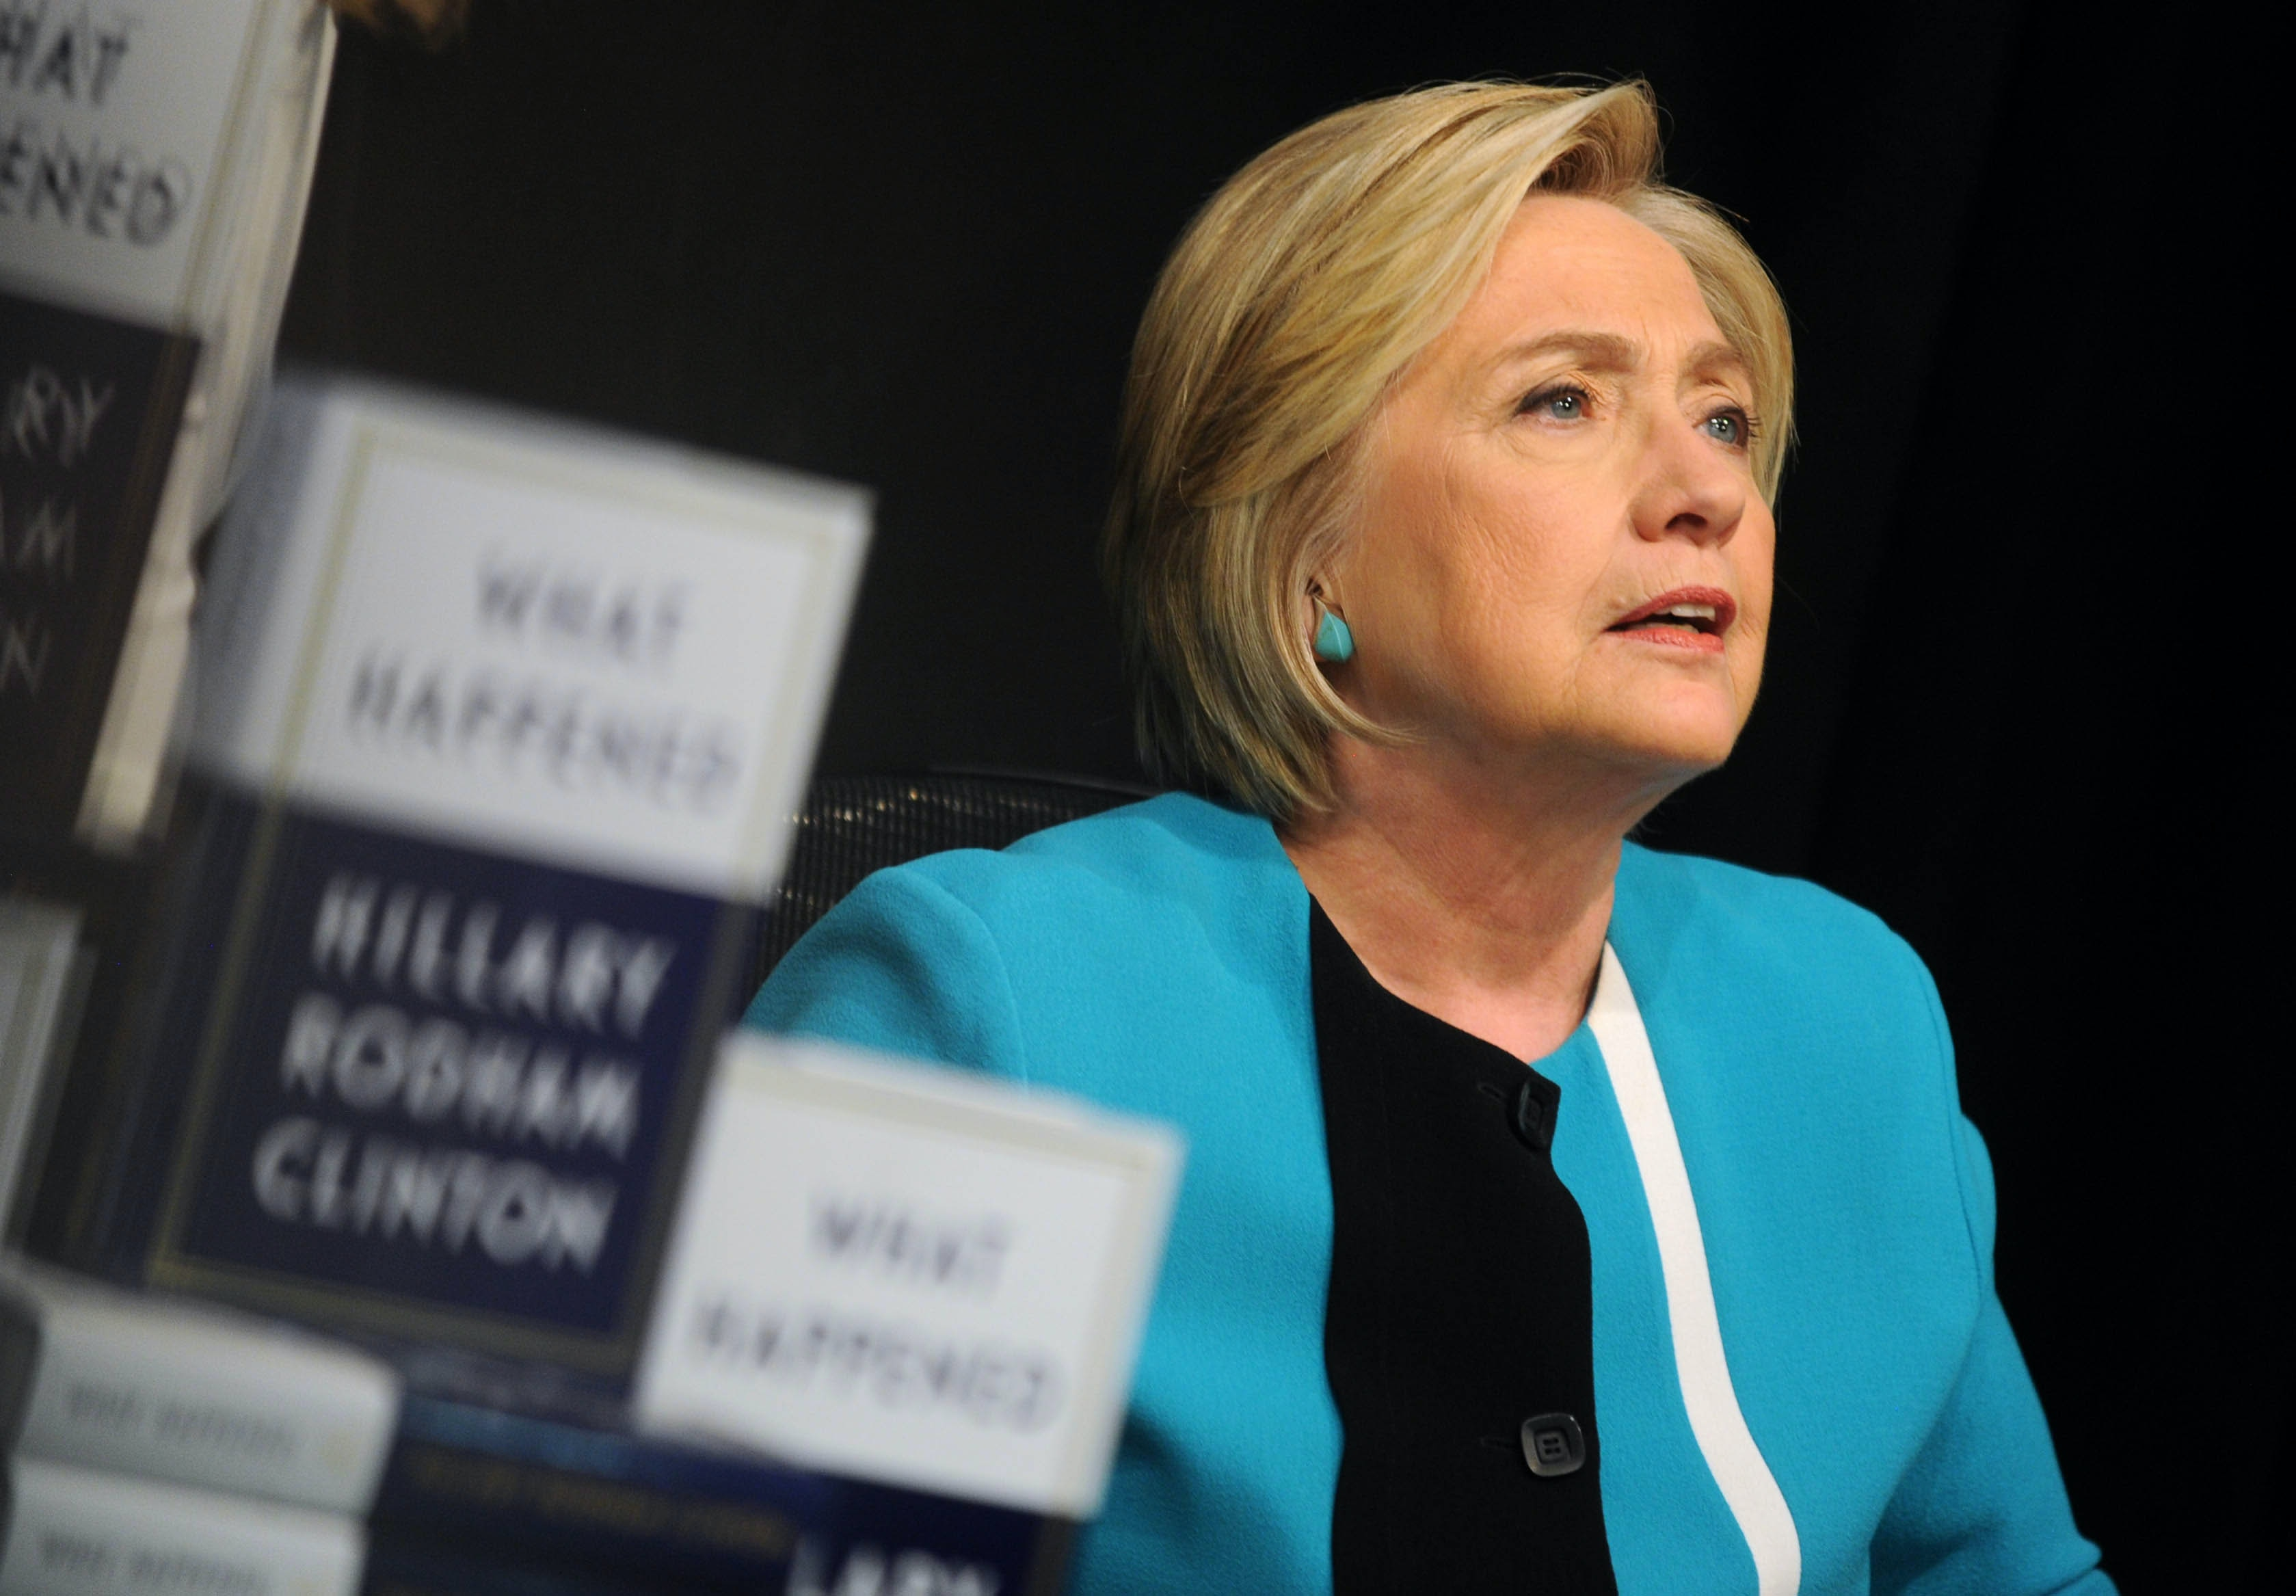 "Photo by: Dennis Van Tine/starmaxinc.com STAR MAX ©2017 ALL RIGHTS RESERVED Telephone/Fax: (212) 995-1196 9/12/17 Hillary Clinton signs copies of her new book ""What Happened"" at Barnes and Noble Union Square in New York City."